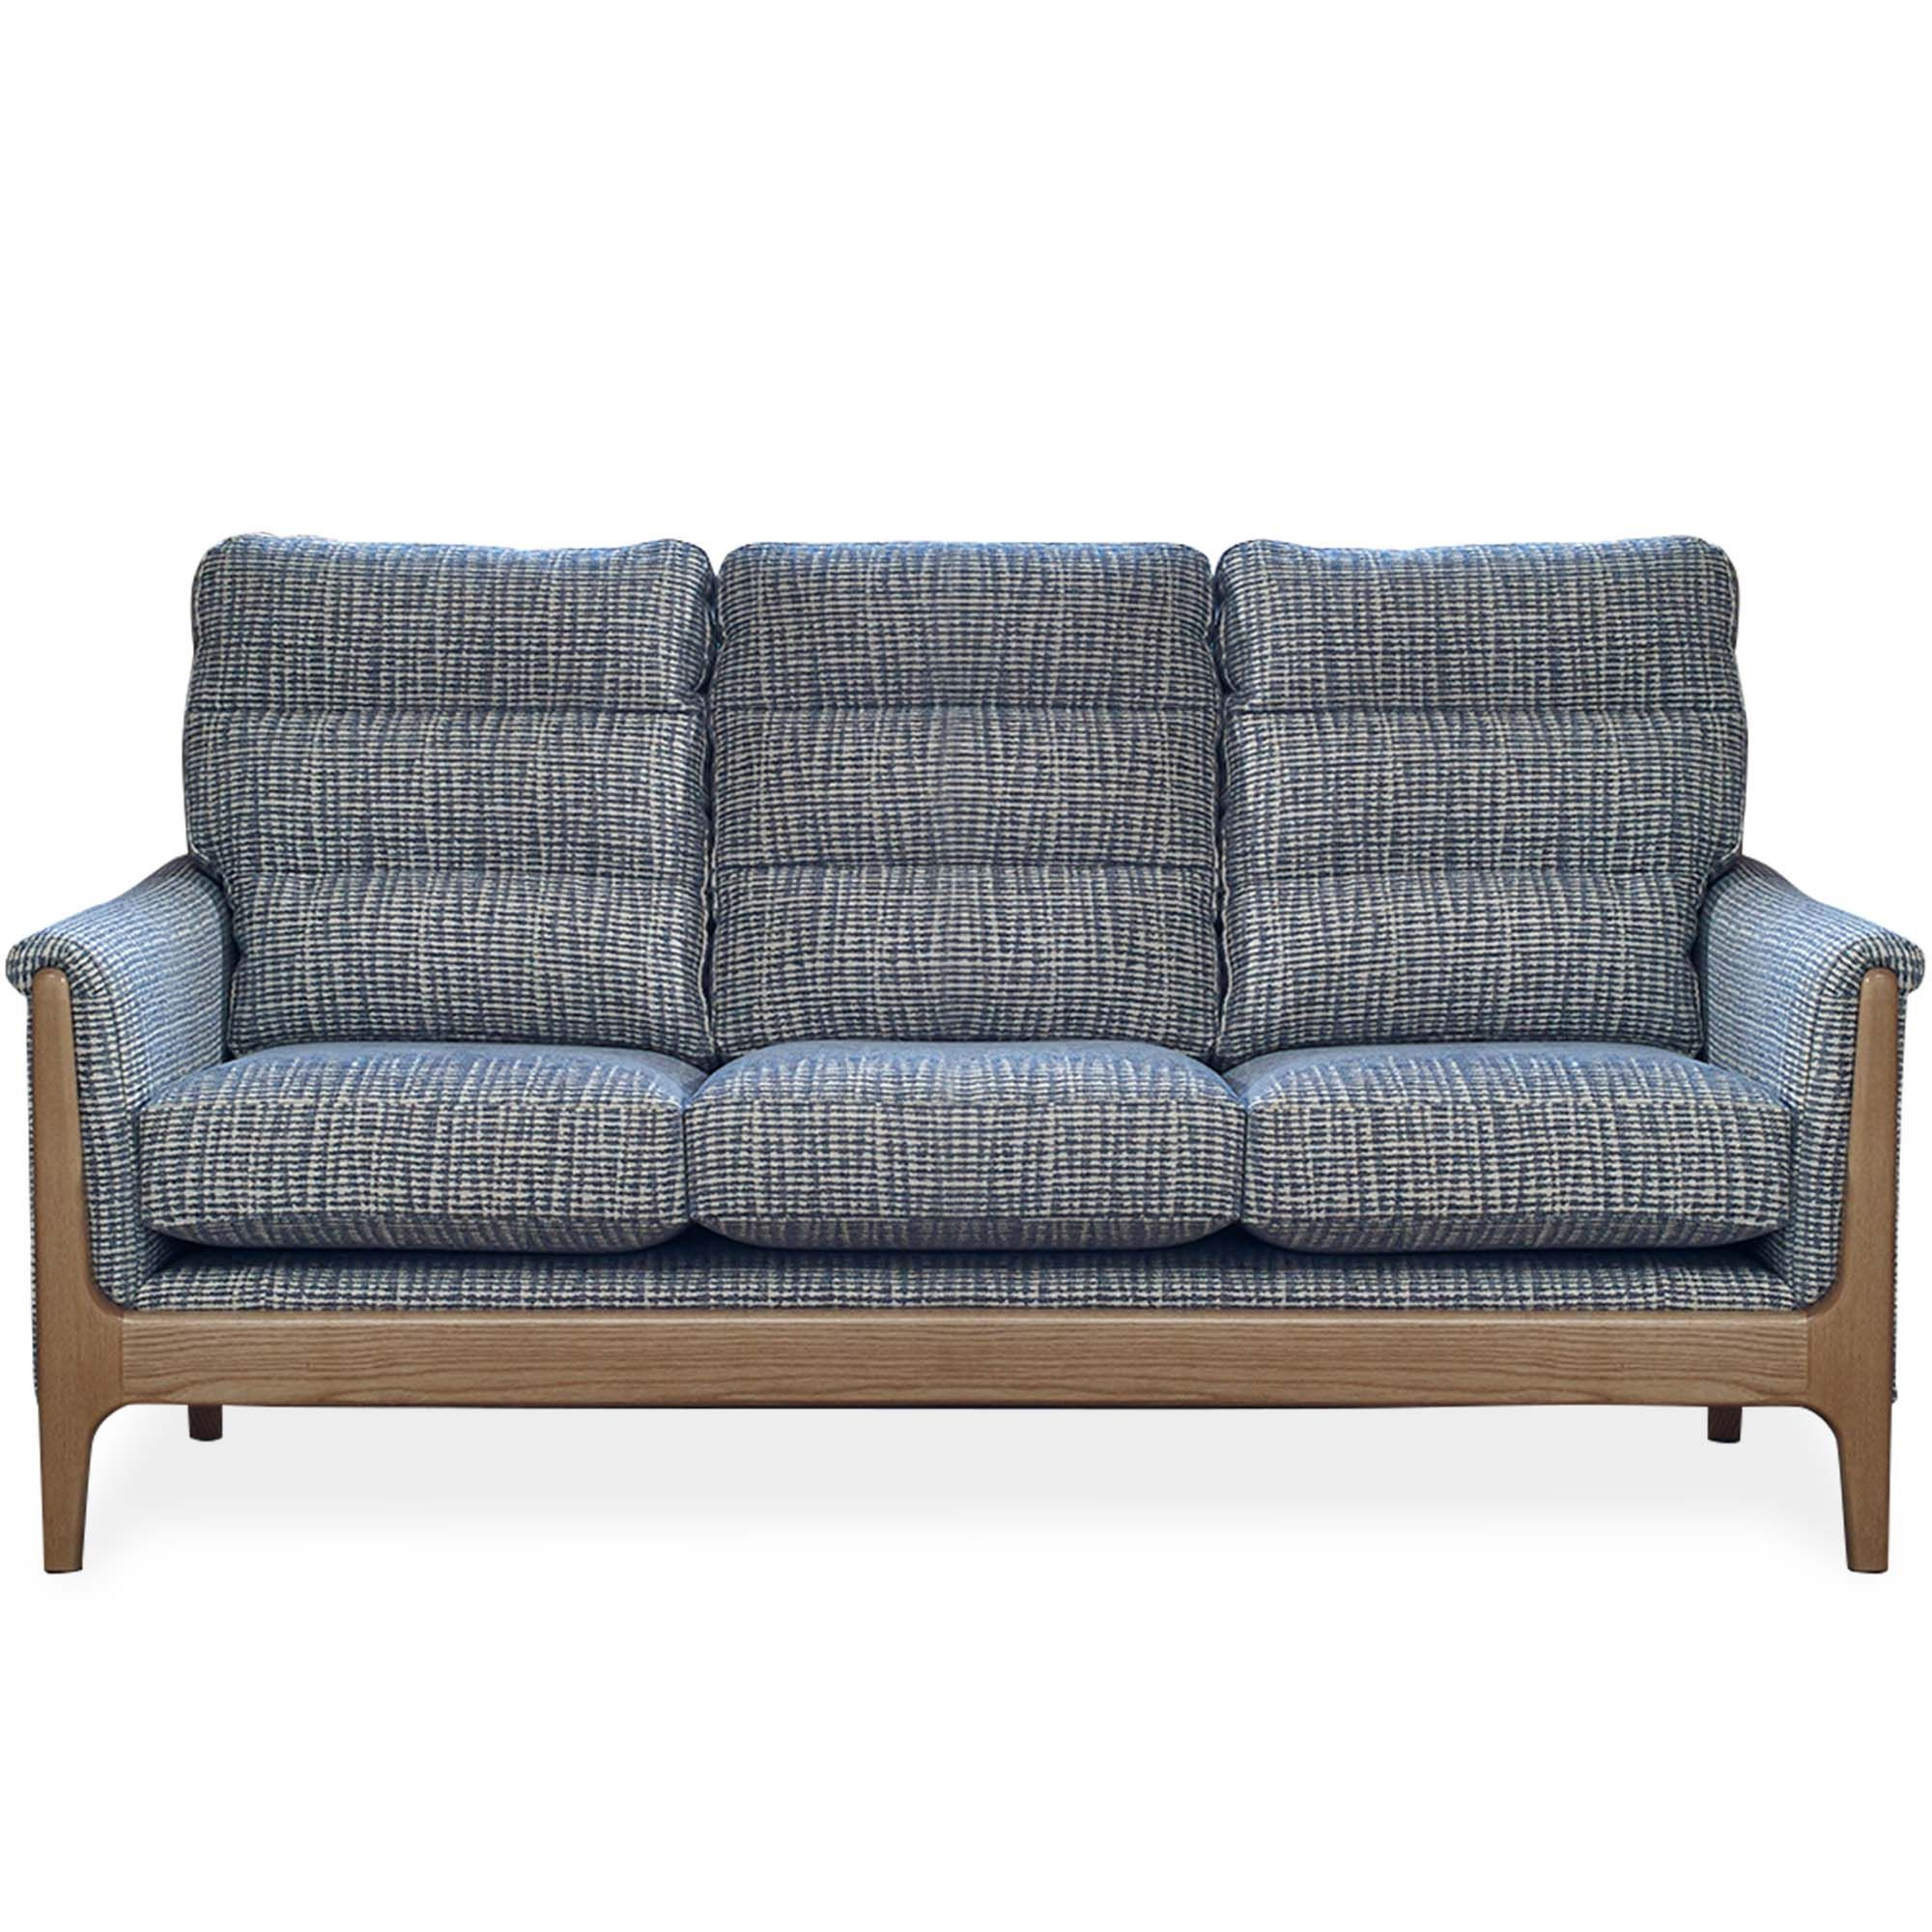 Cintique Lydia 3 Seater Sofa Fabric D Fabric Sofas Meubles - Lydia 2 Seater Sofa